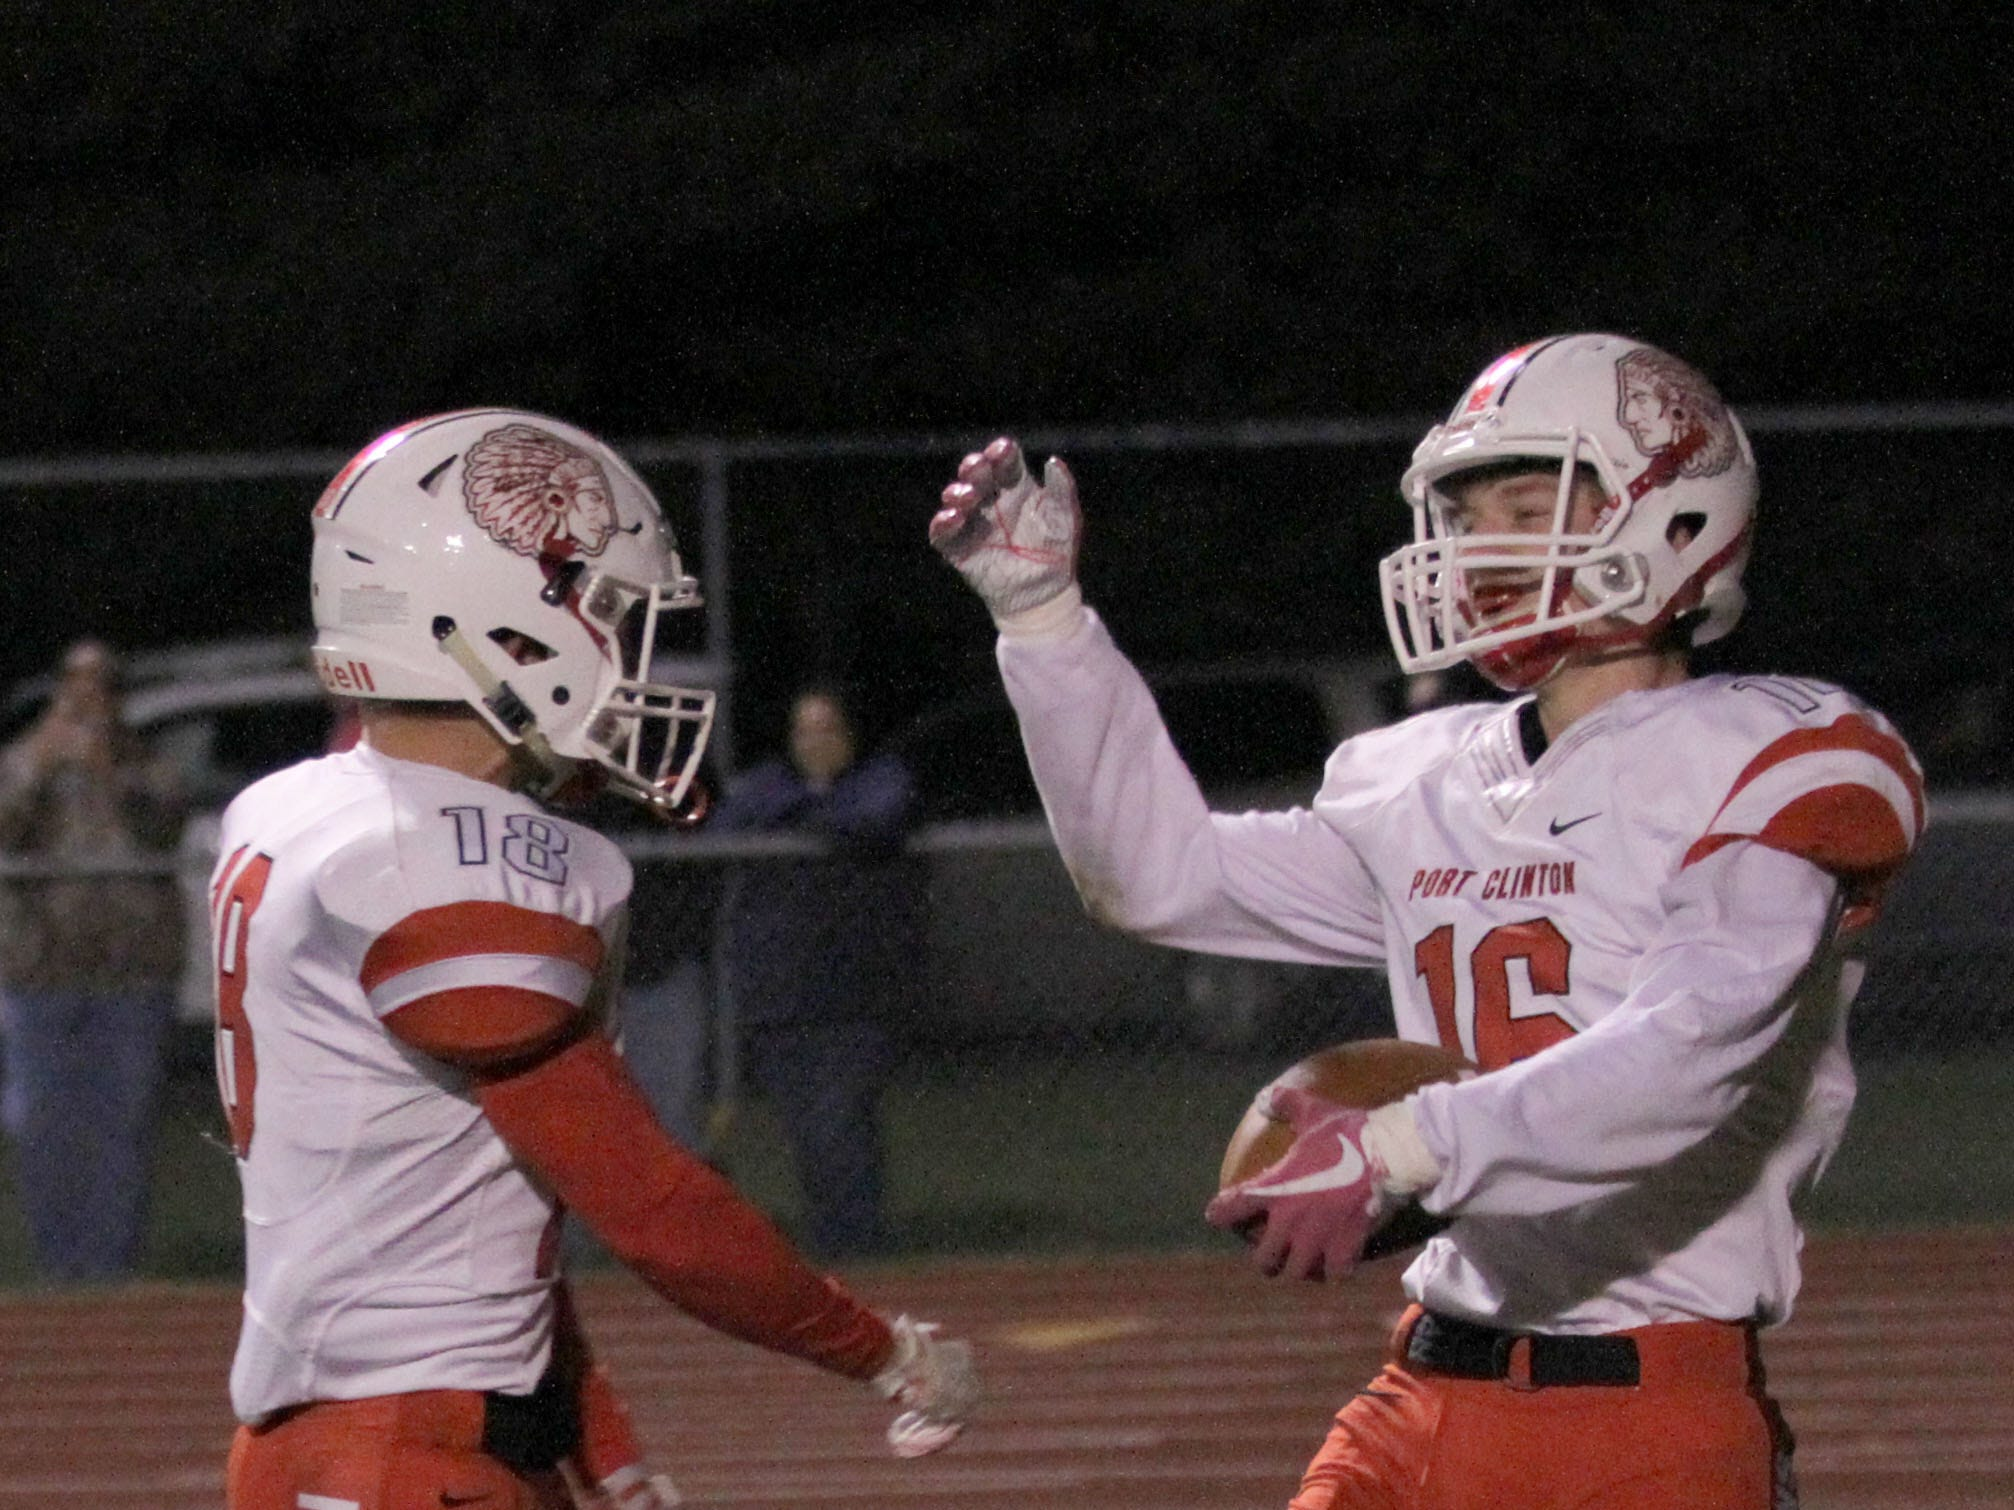 Port Clinton's Caden Swander and Nikolas Skoufos celebrate a touchdown against Oak Harbor.